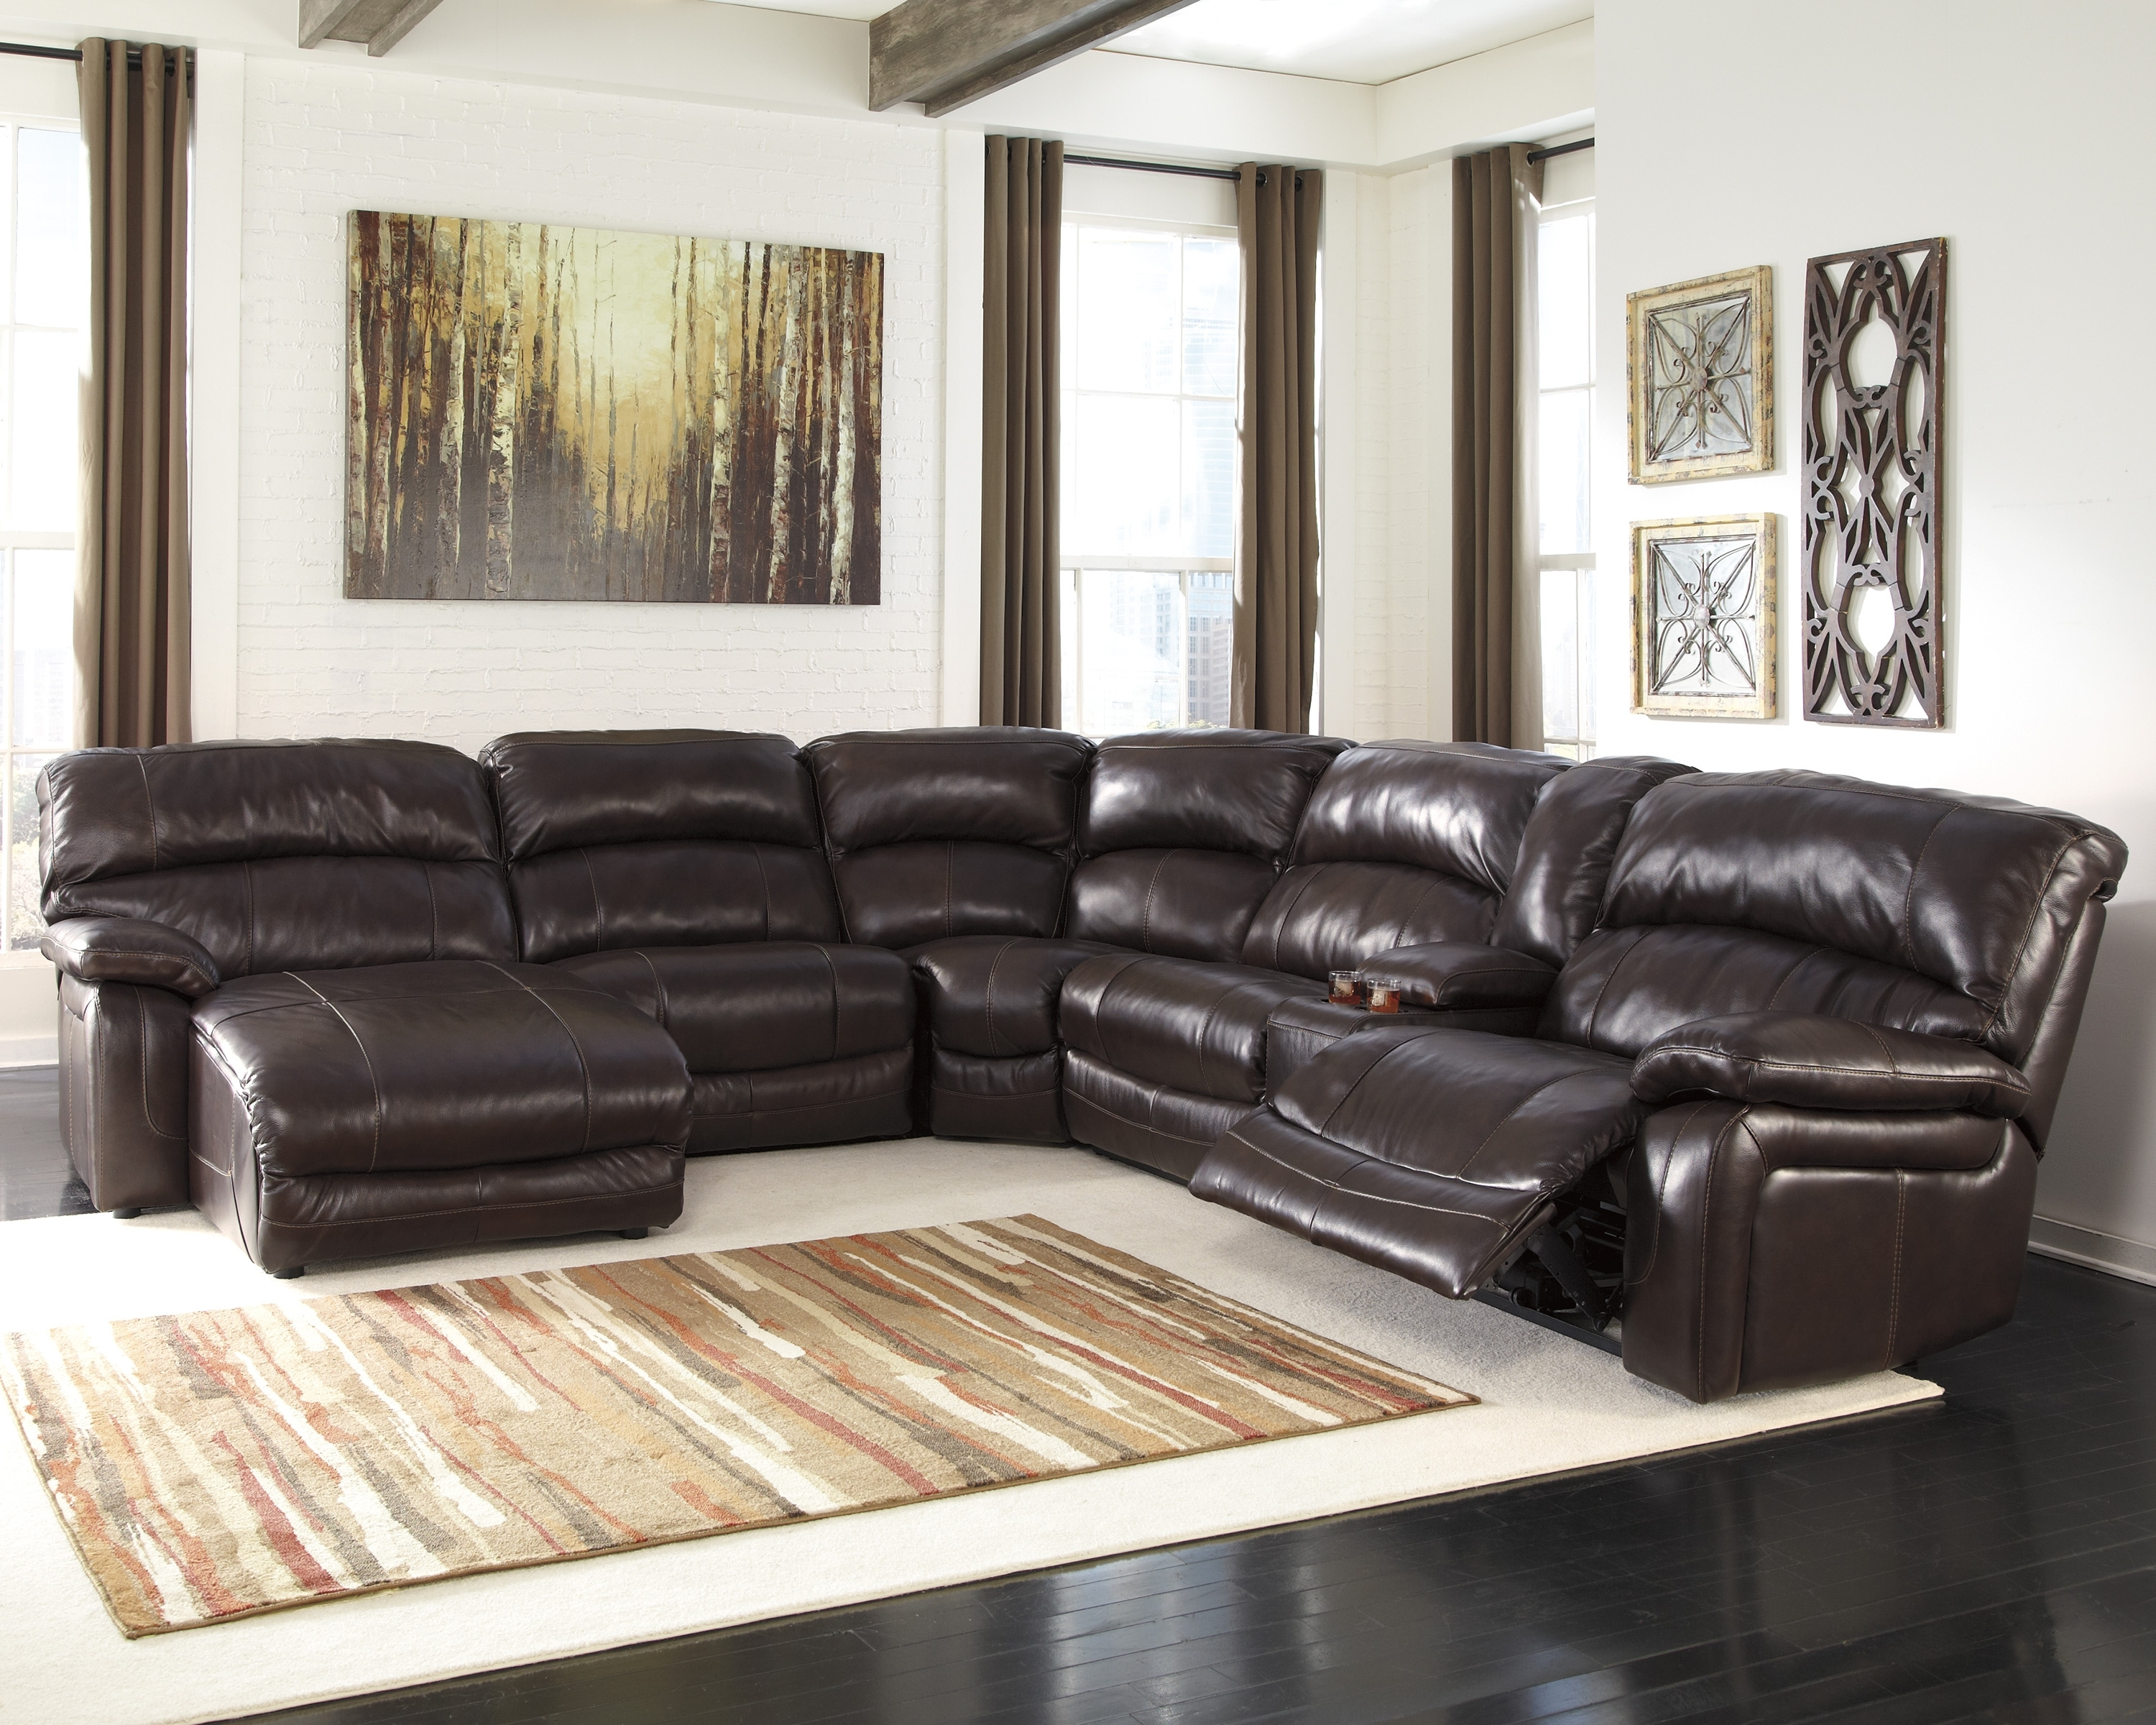 Latest Leather Sectional Sofas With Recliners And Cup Holders Sectional Throughout Black Leather Sectionals With Chaise (View 6 of 15)